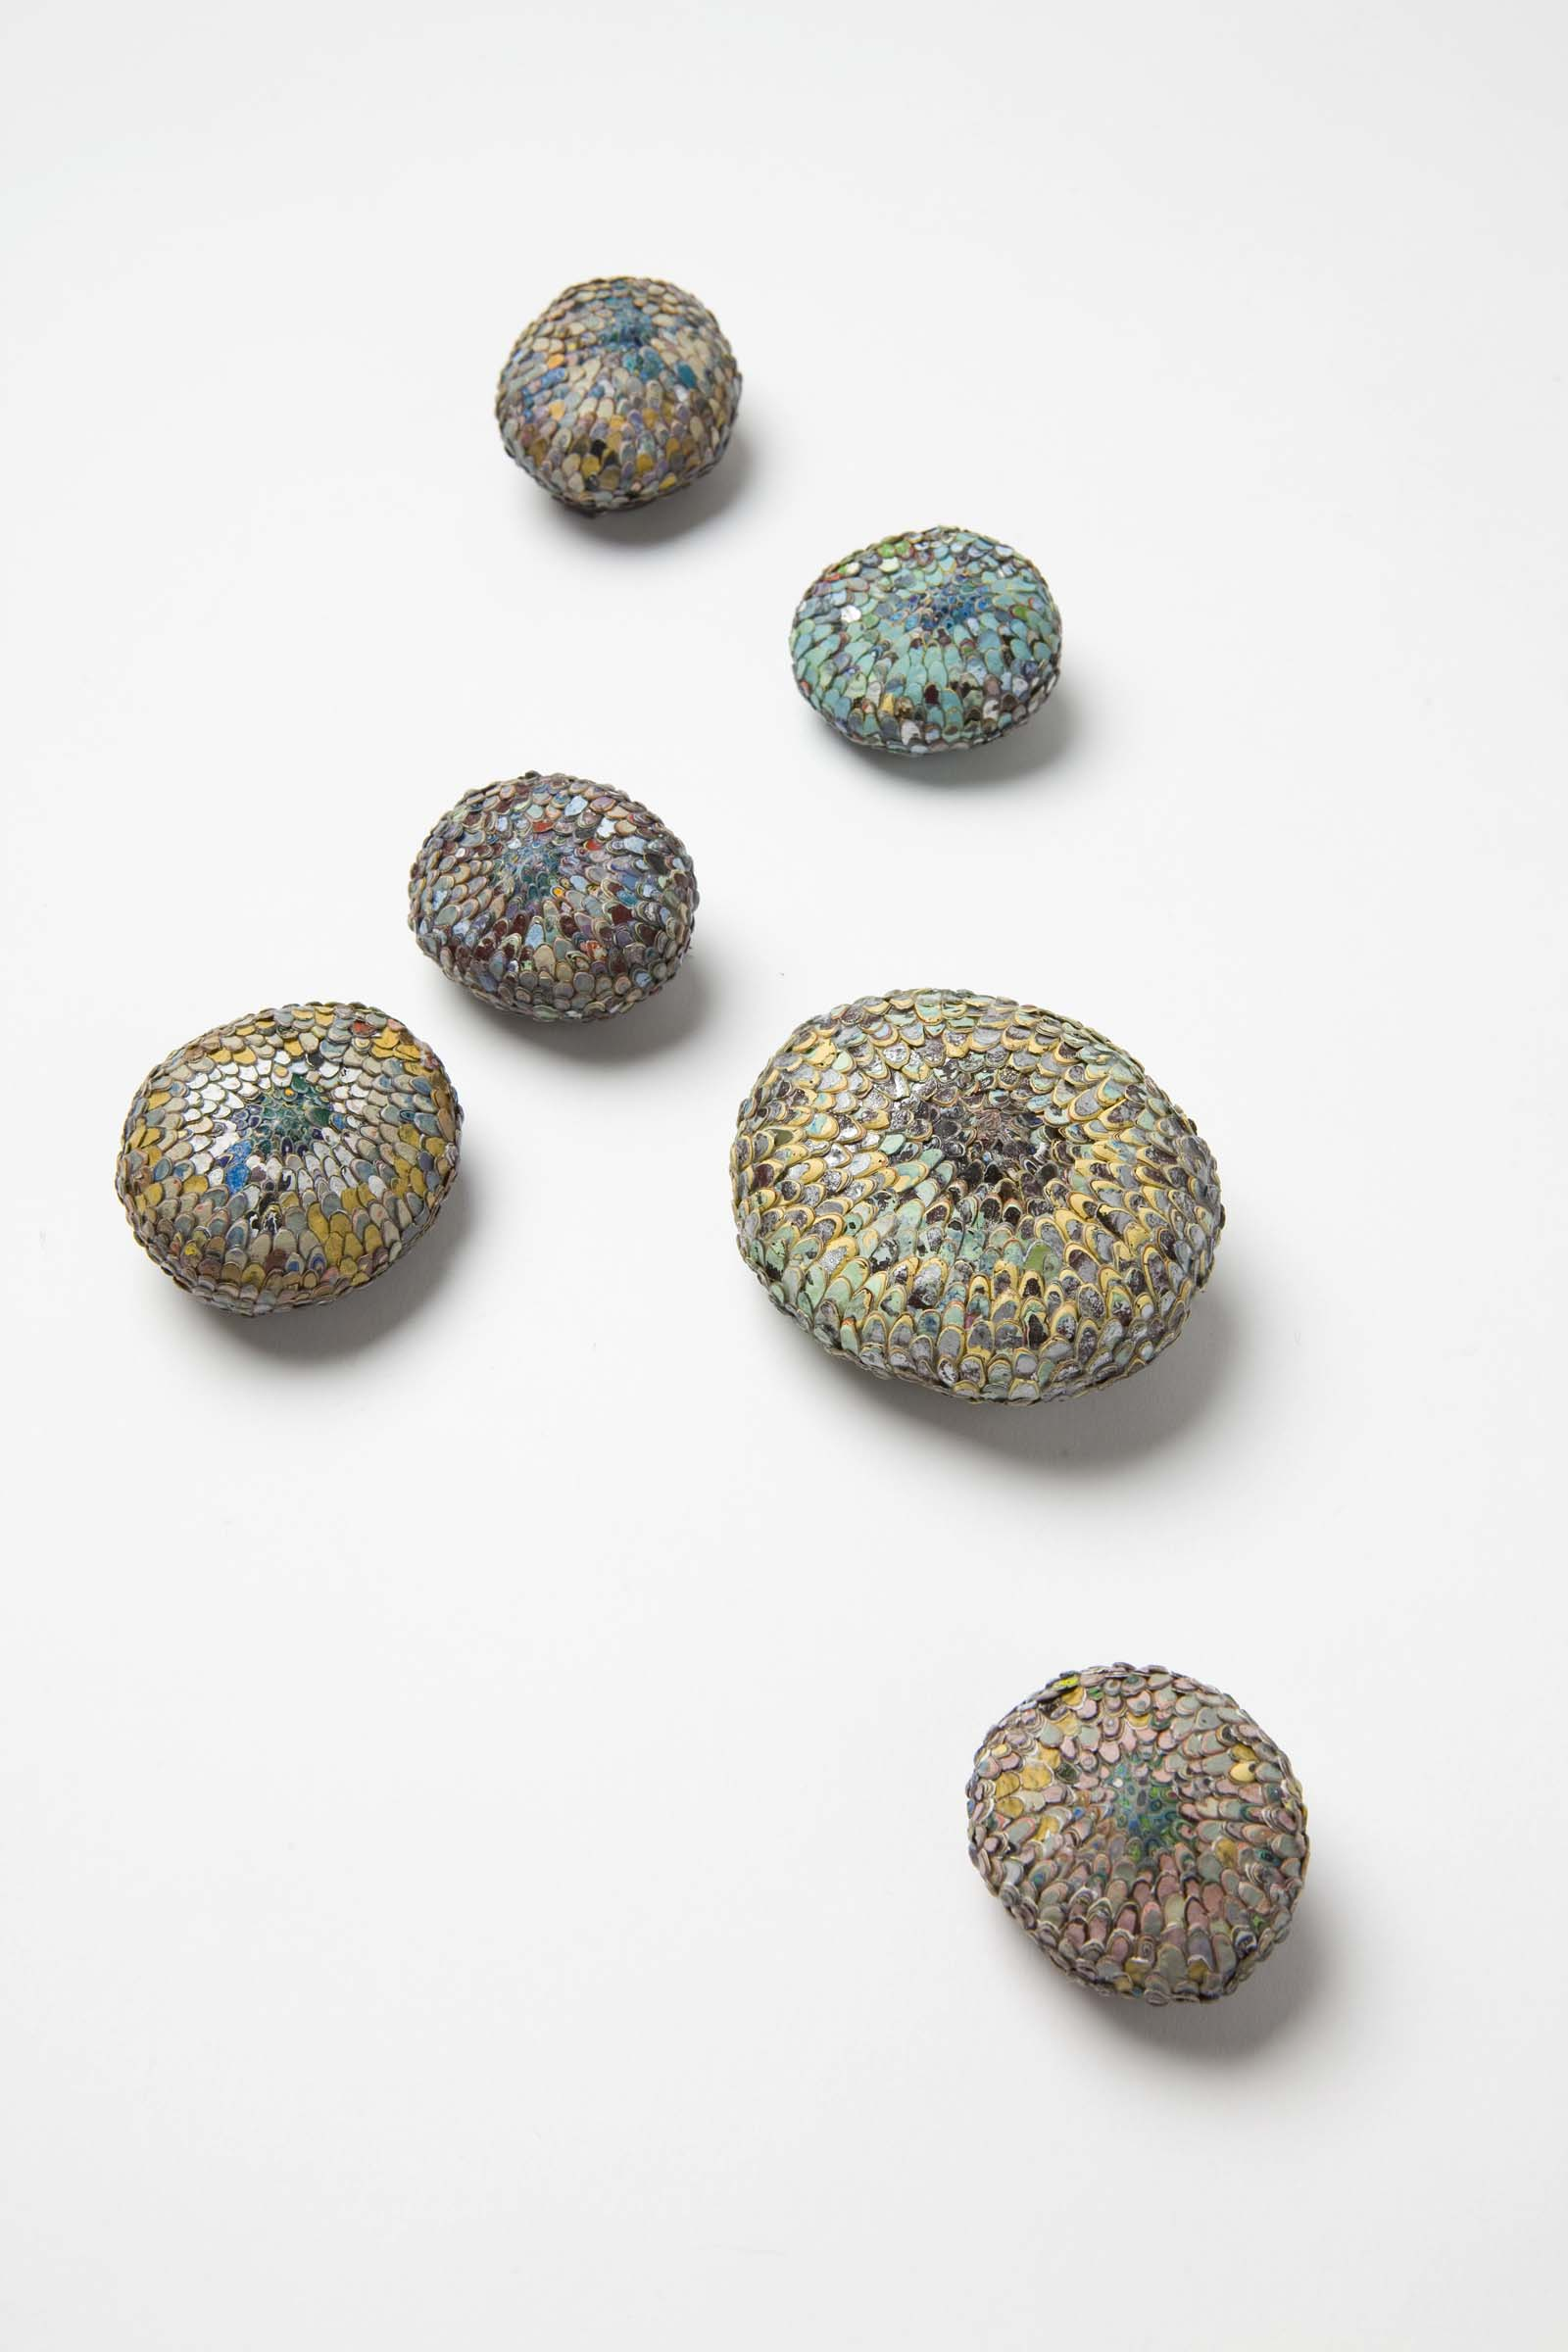 """Nuggets"" I Brooches, 2014 I Graffiti, silver, stainless steel I Photo: Mirei Takeuchi"